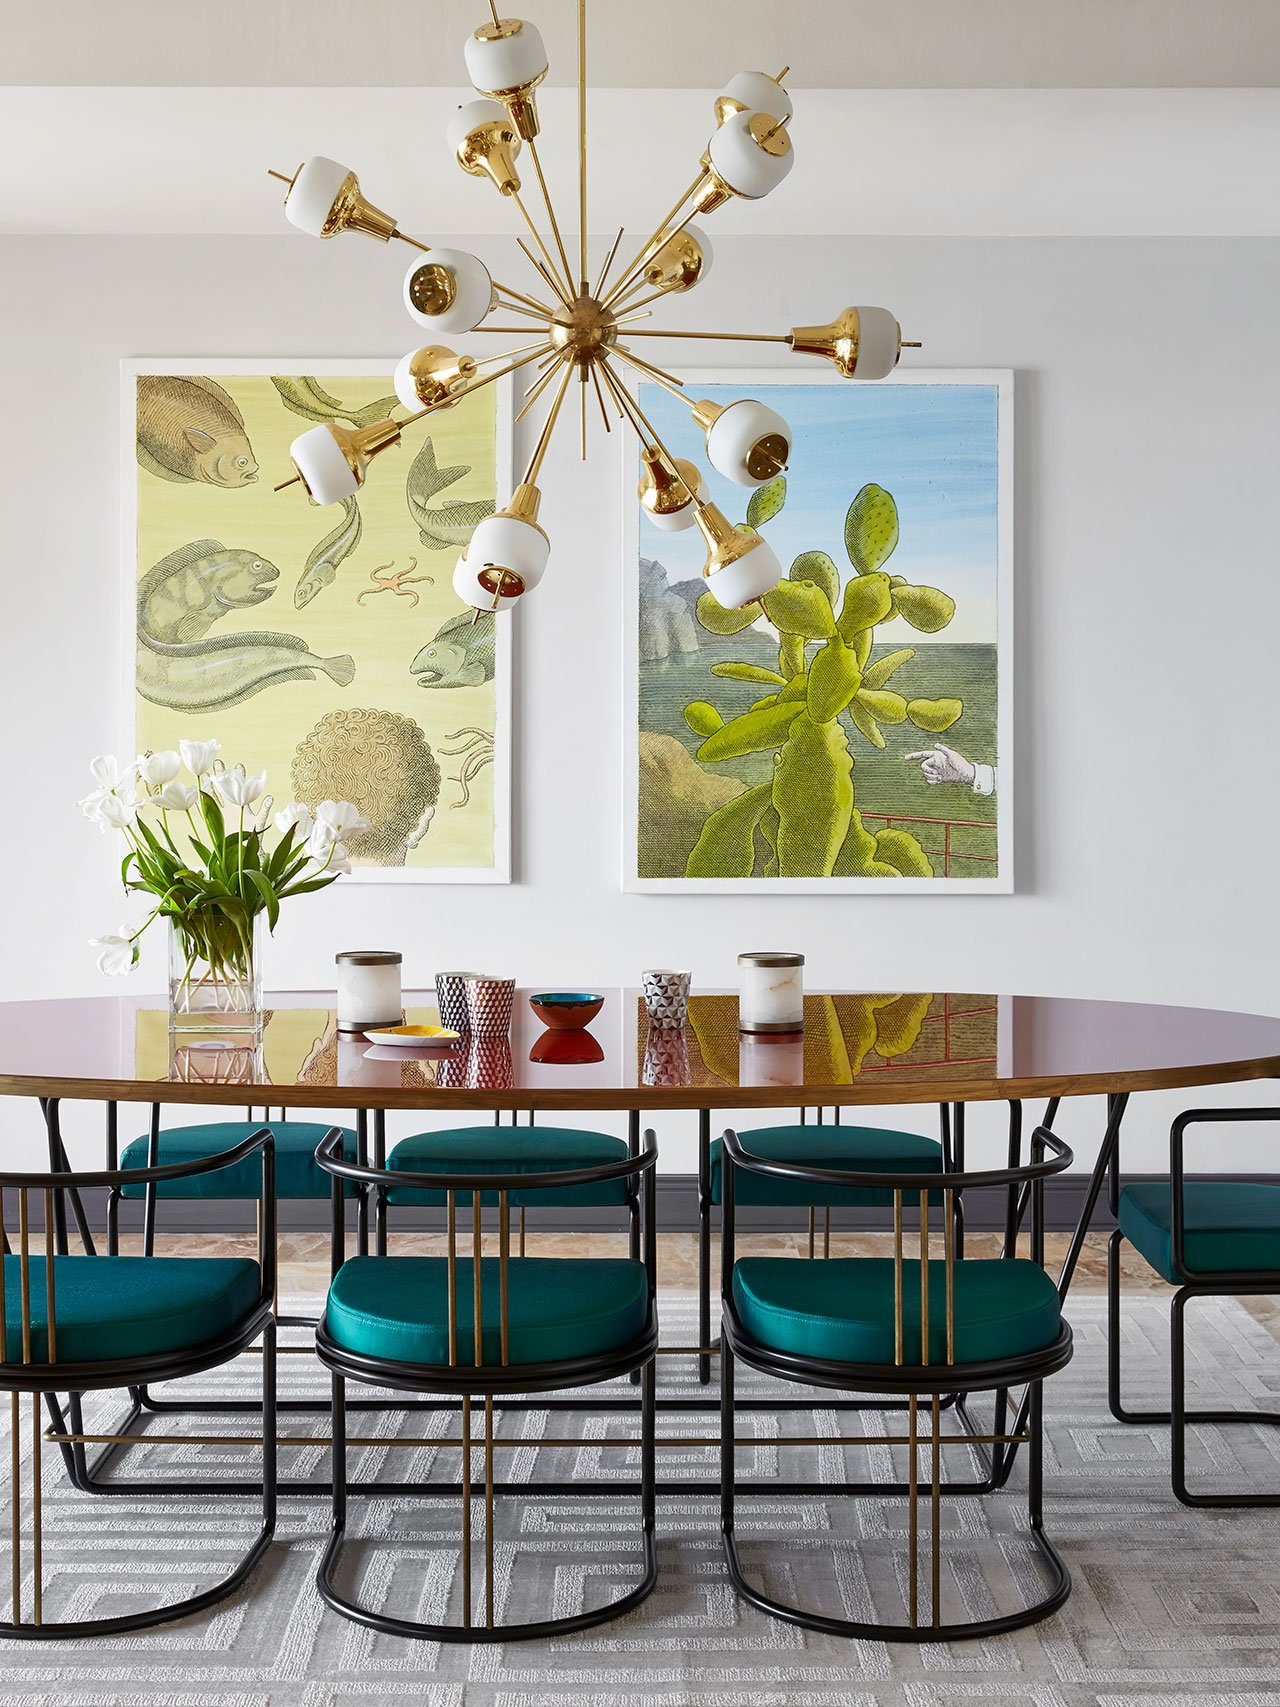 Timeless Luxury Apartment in Monaco Filled with Mid-Century Lighting 3 mid-century lighting Timeless Luxury Apartment in Monaco Filled with Mid-Century Lighting Timeless Luxury Apartment in Monaco Filled with Mid Century Lighting 8